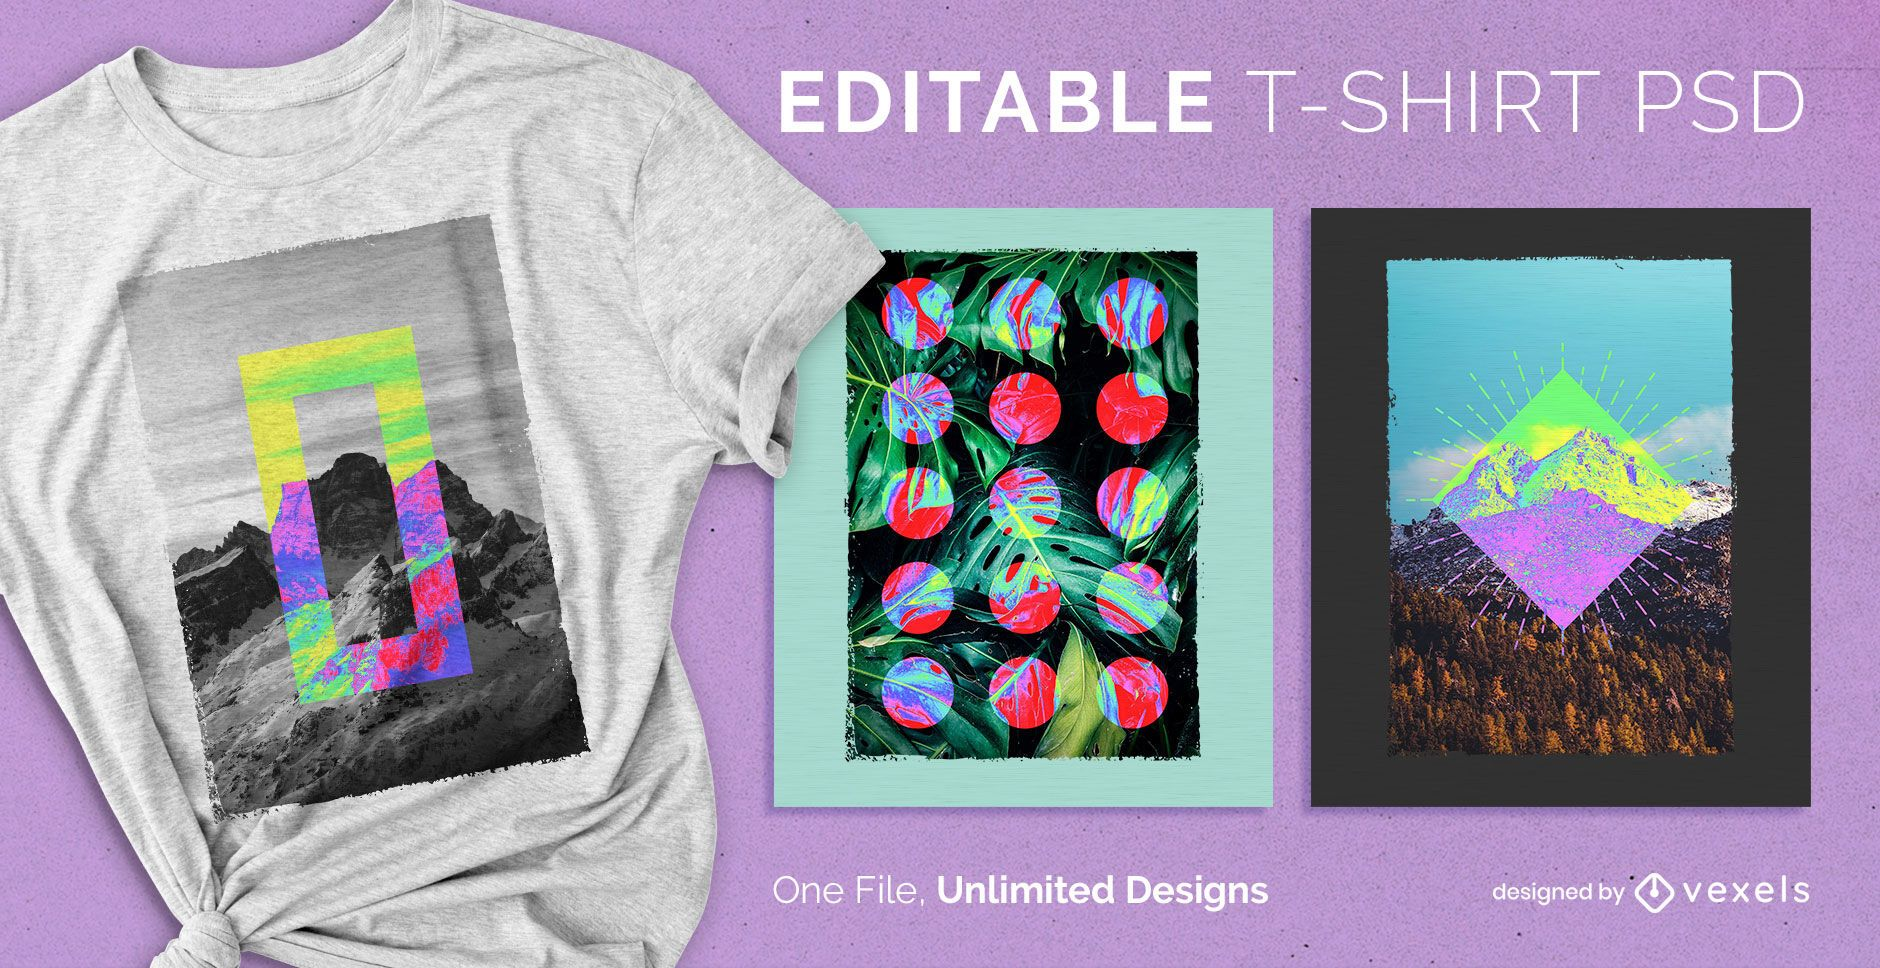 Inverted colors scalable t-shirt psd